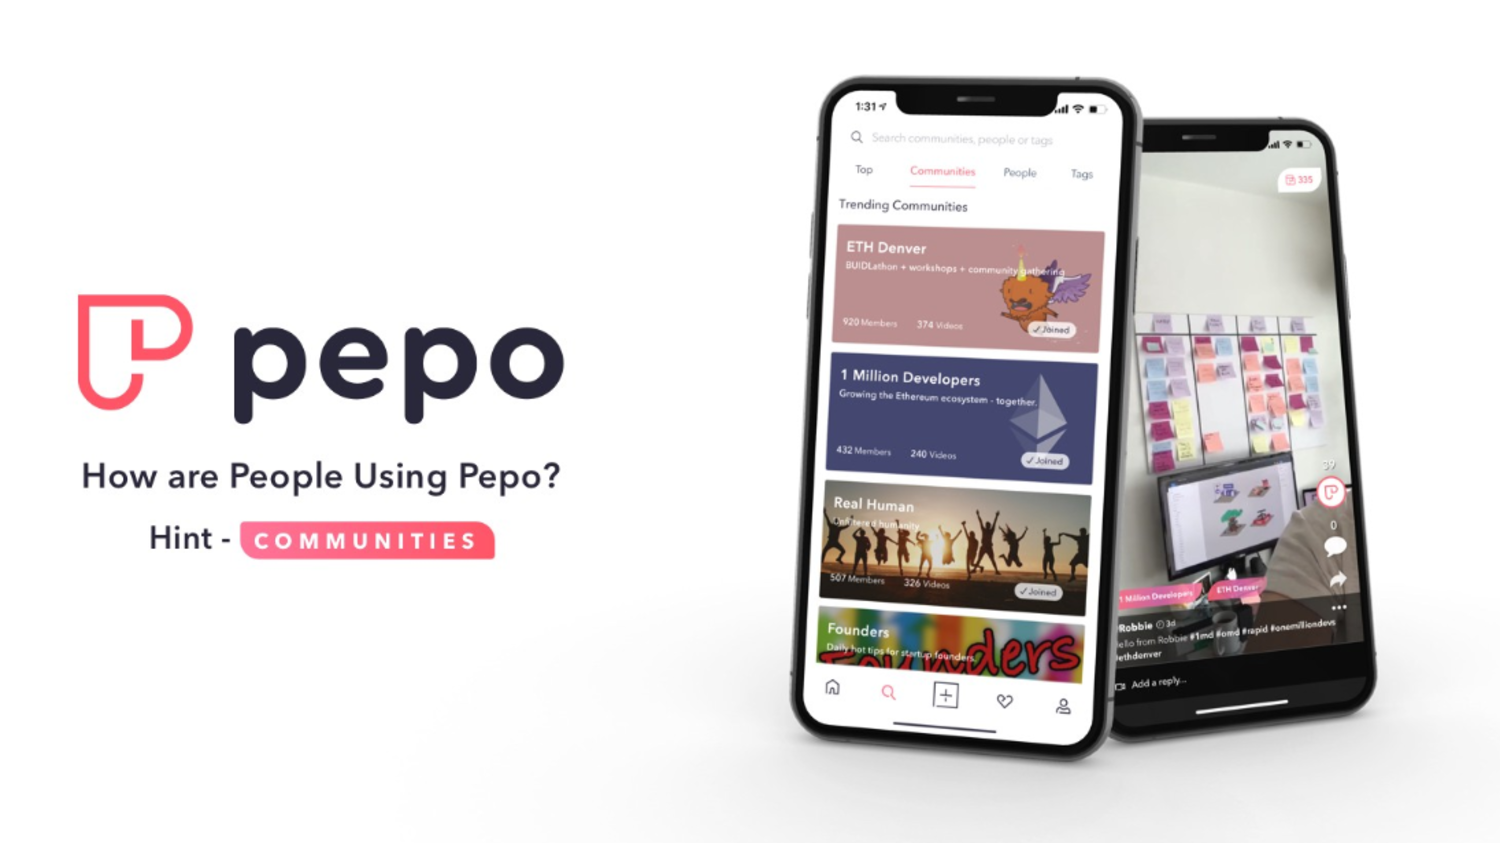 How are People Using Pepo? Hint: Communities